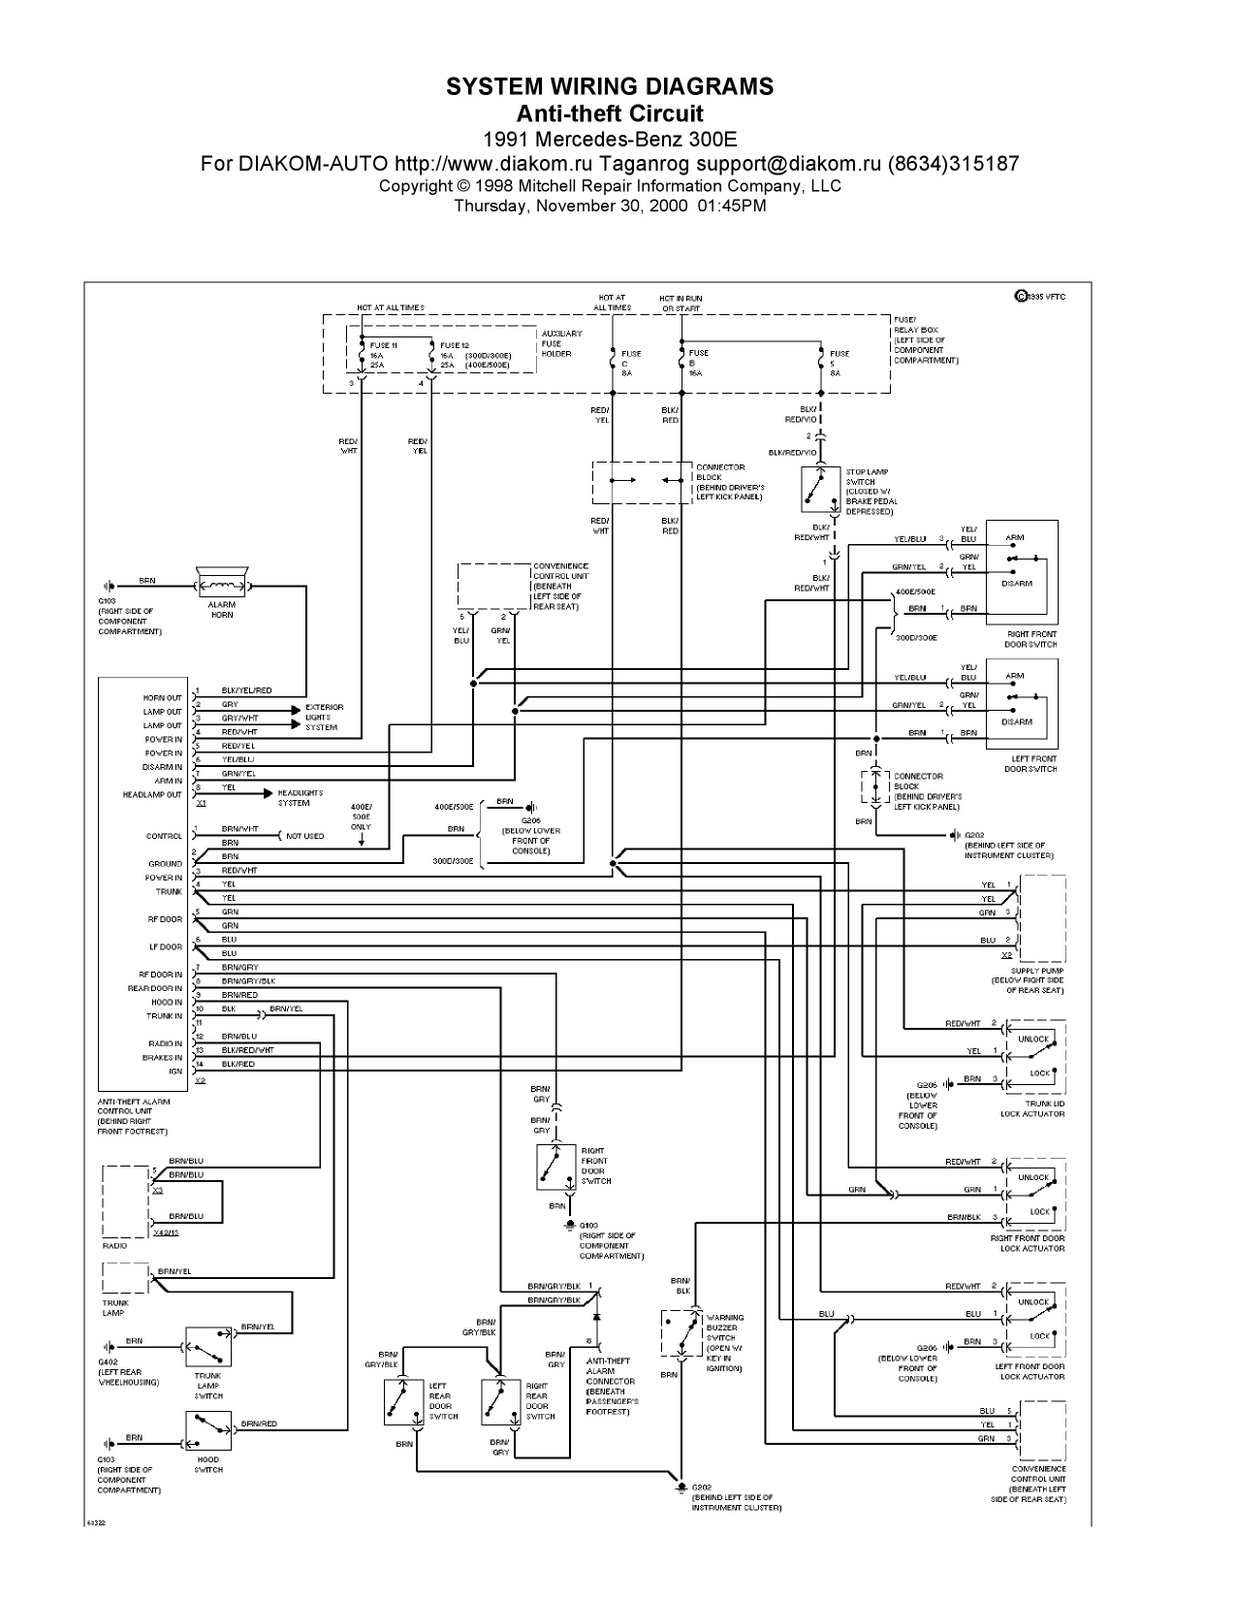 87 Mercedes 300e Fuse Box Diagram Wiring Library For 1995 Sl500 Benz Schematics Get Free Image About 1993 Radio